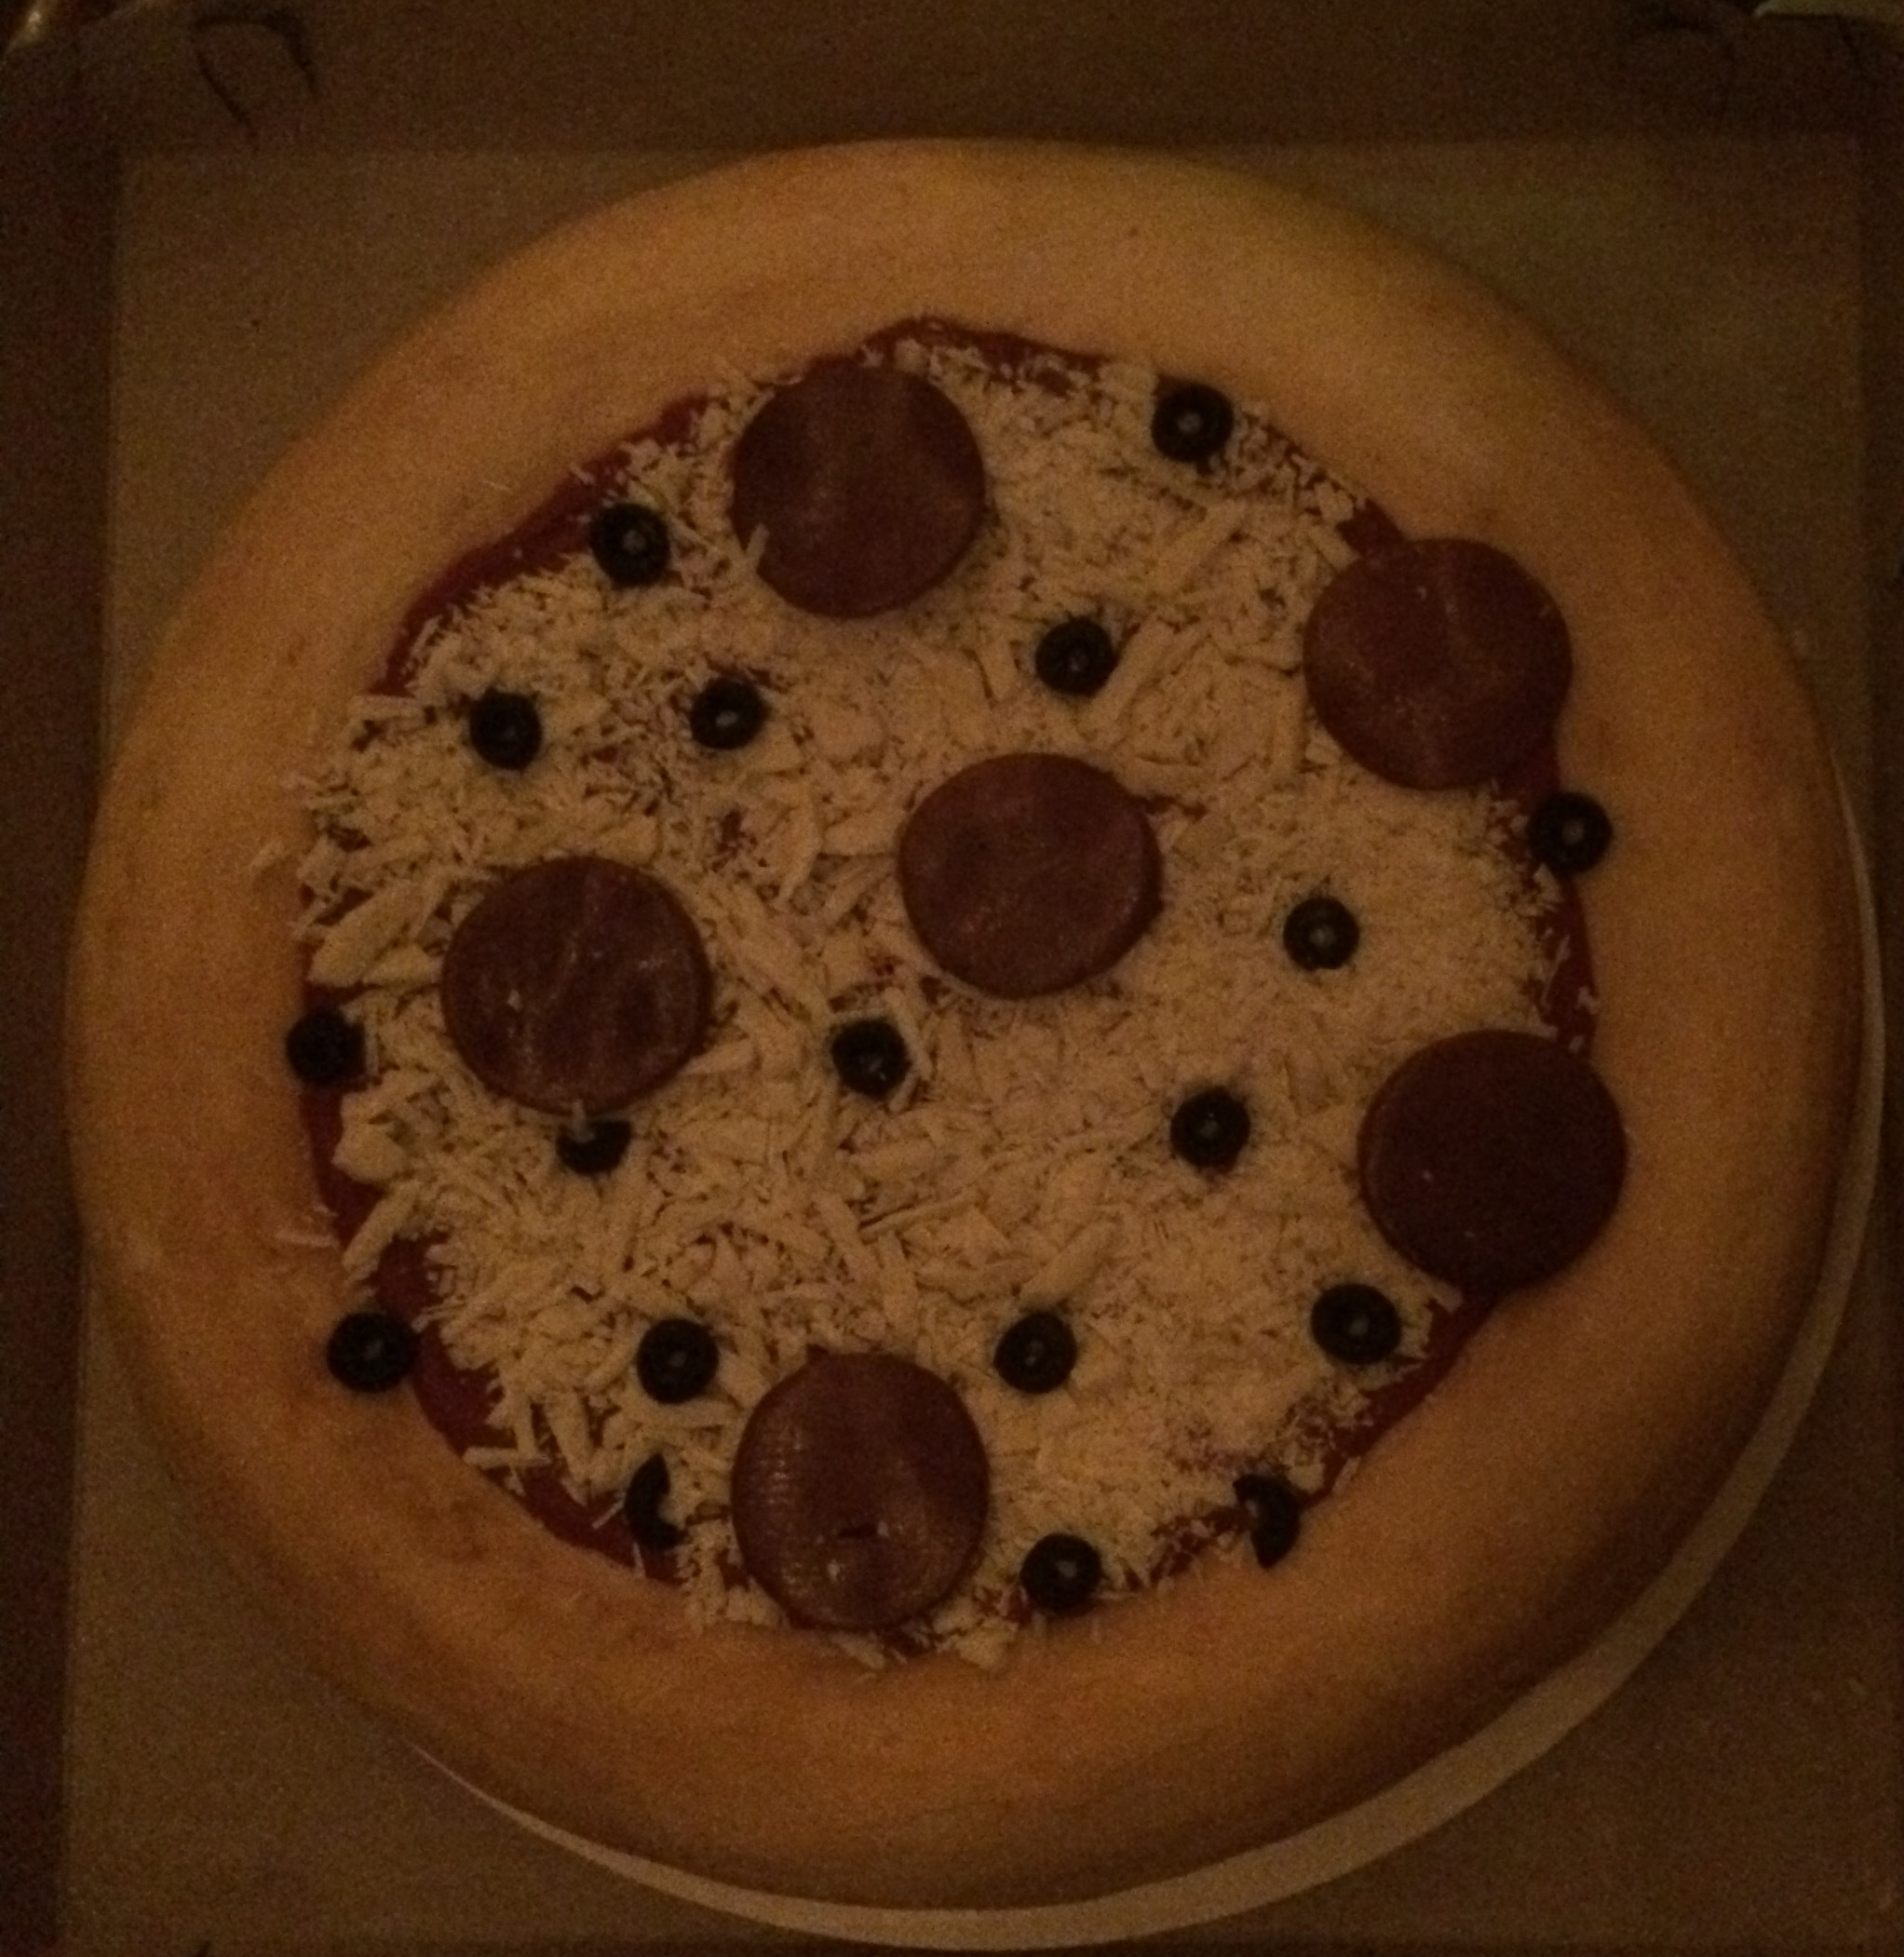 This is the pizza cake Alana made me for my birthday. No lie. Pizza.